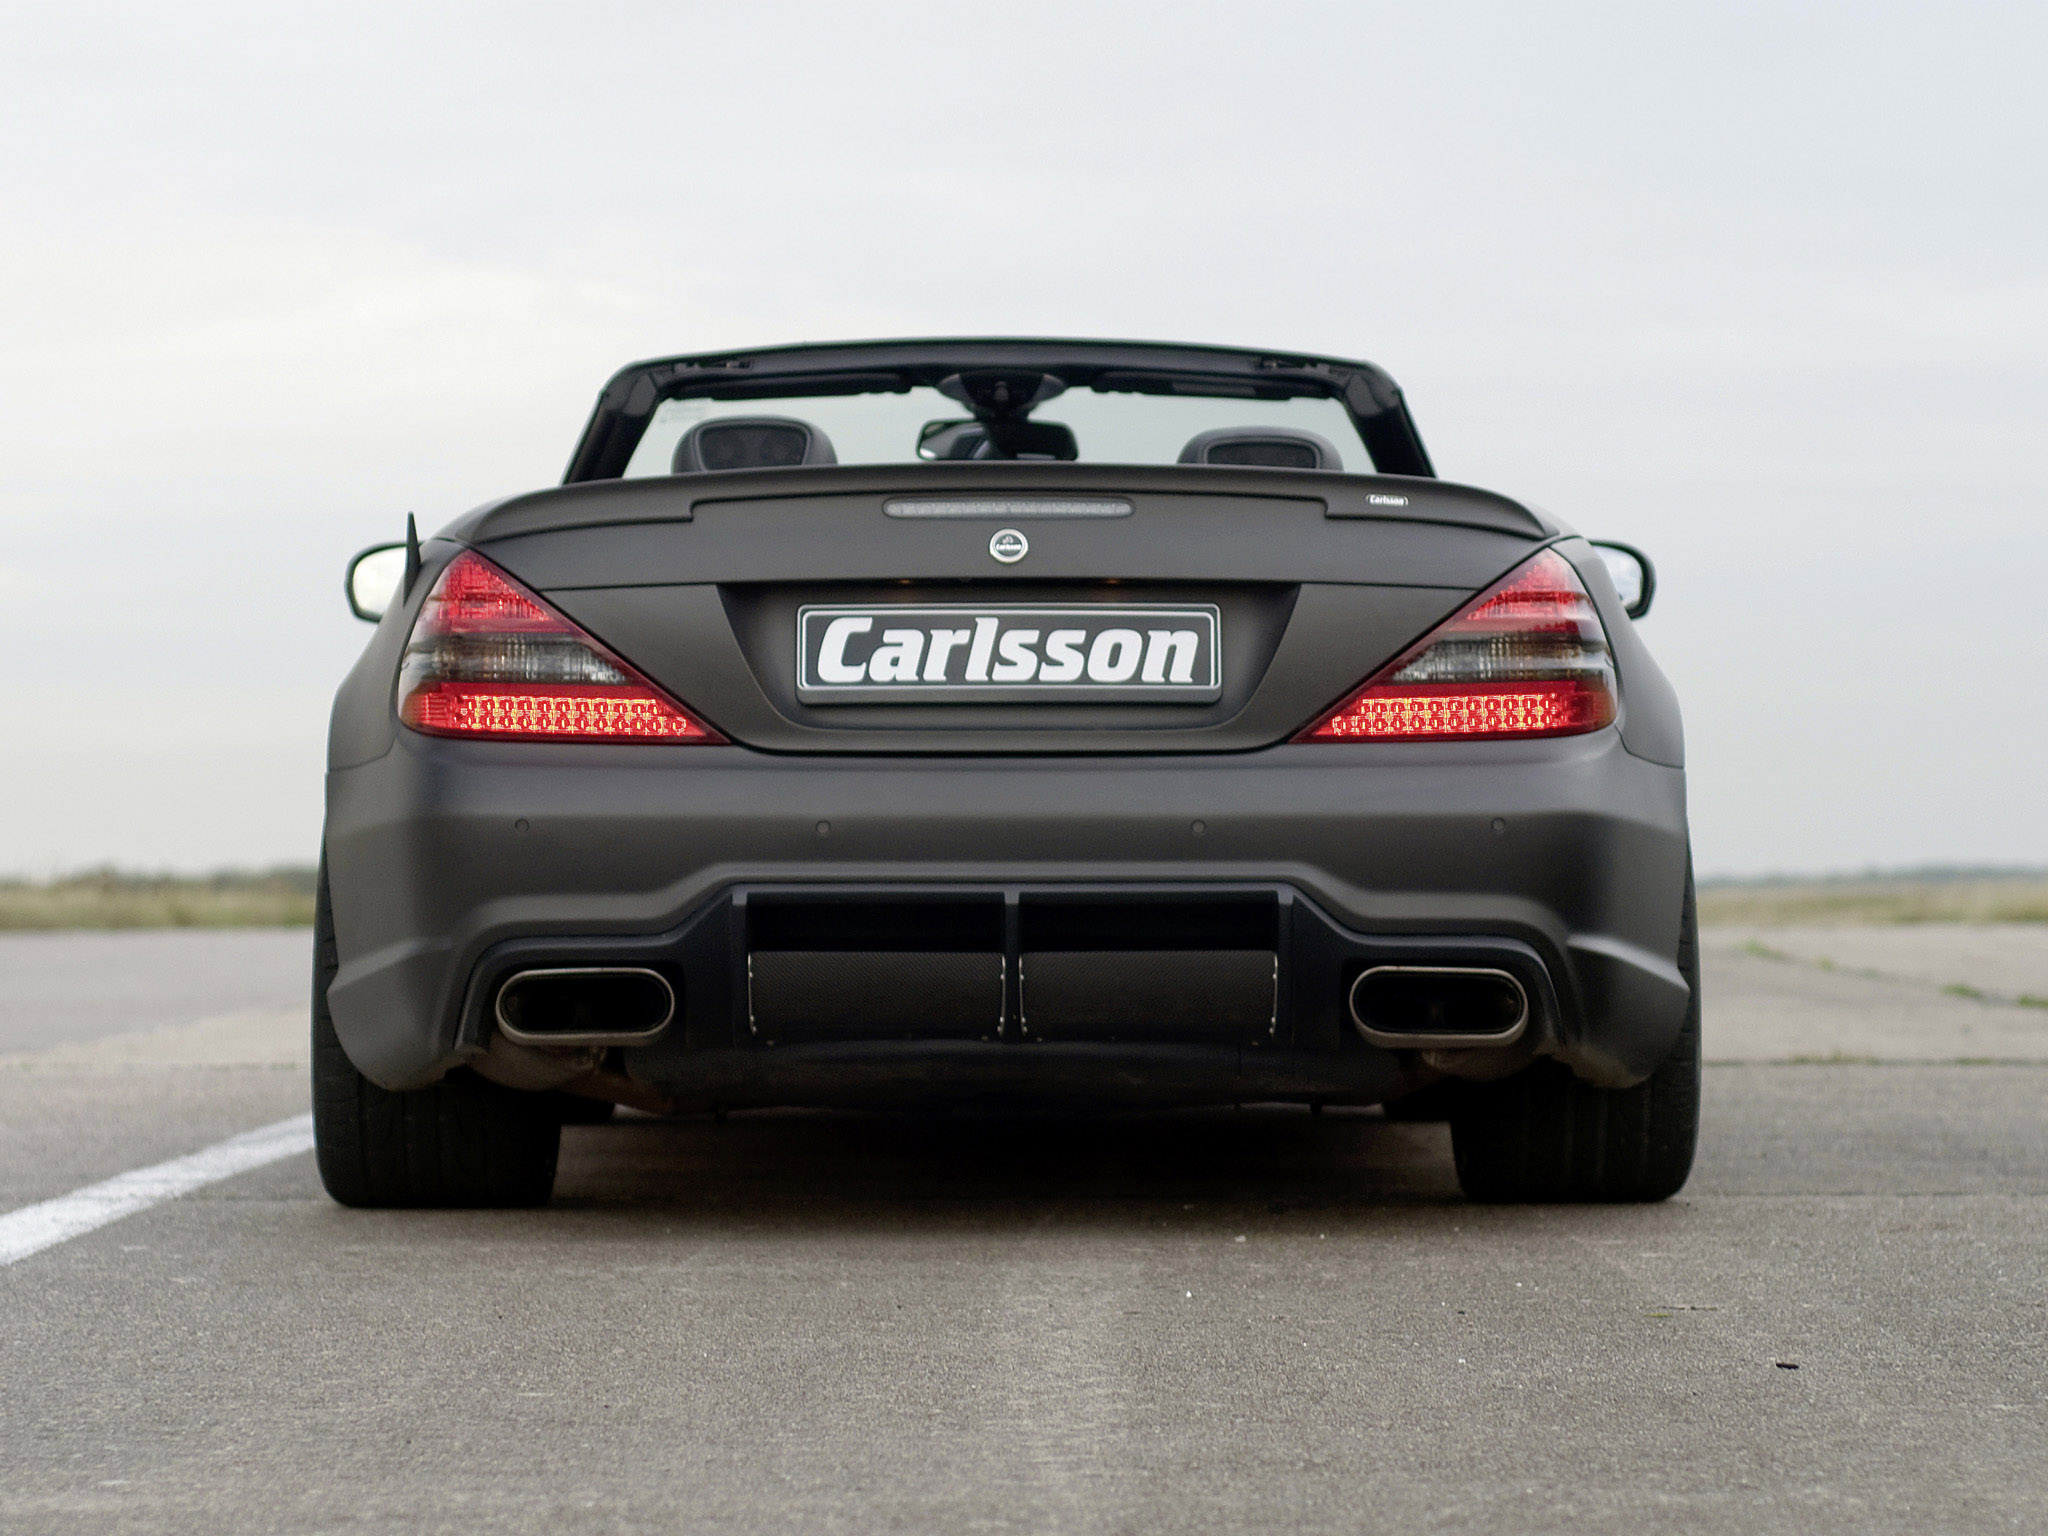 car in pictures \u2013 car photo gallery carlsson mercedes sl ck63 rs